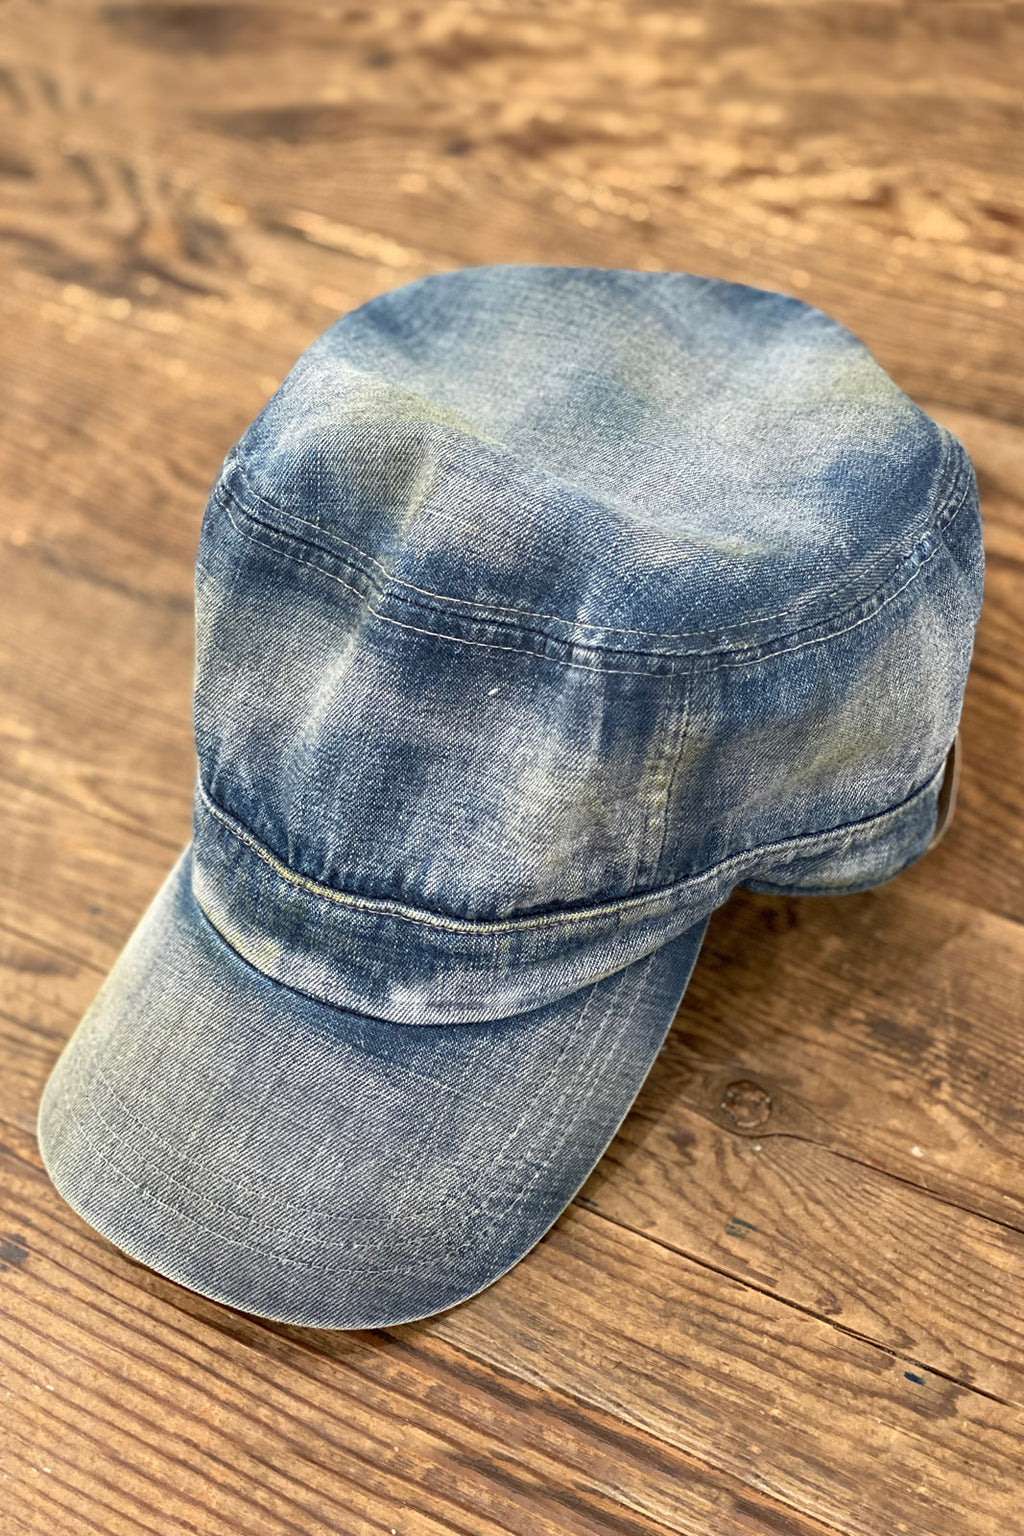 H.W. DOG & CO. Denim Cap